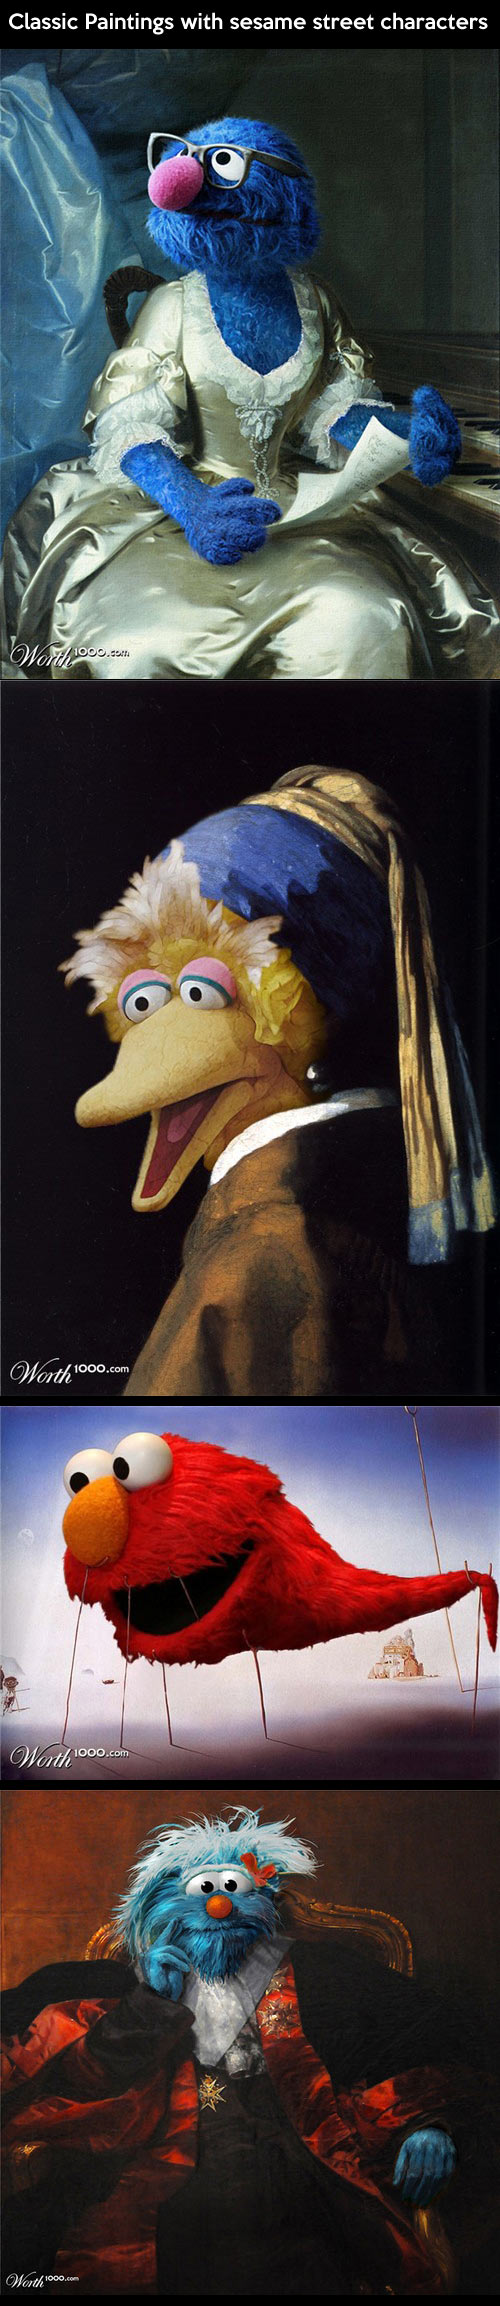 Classic Paintings Recreated with Sesame Street...